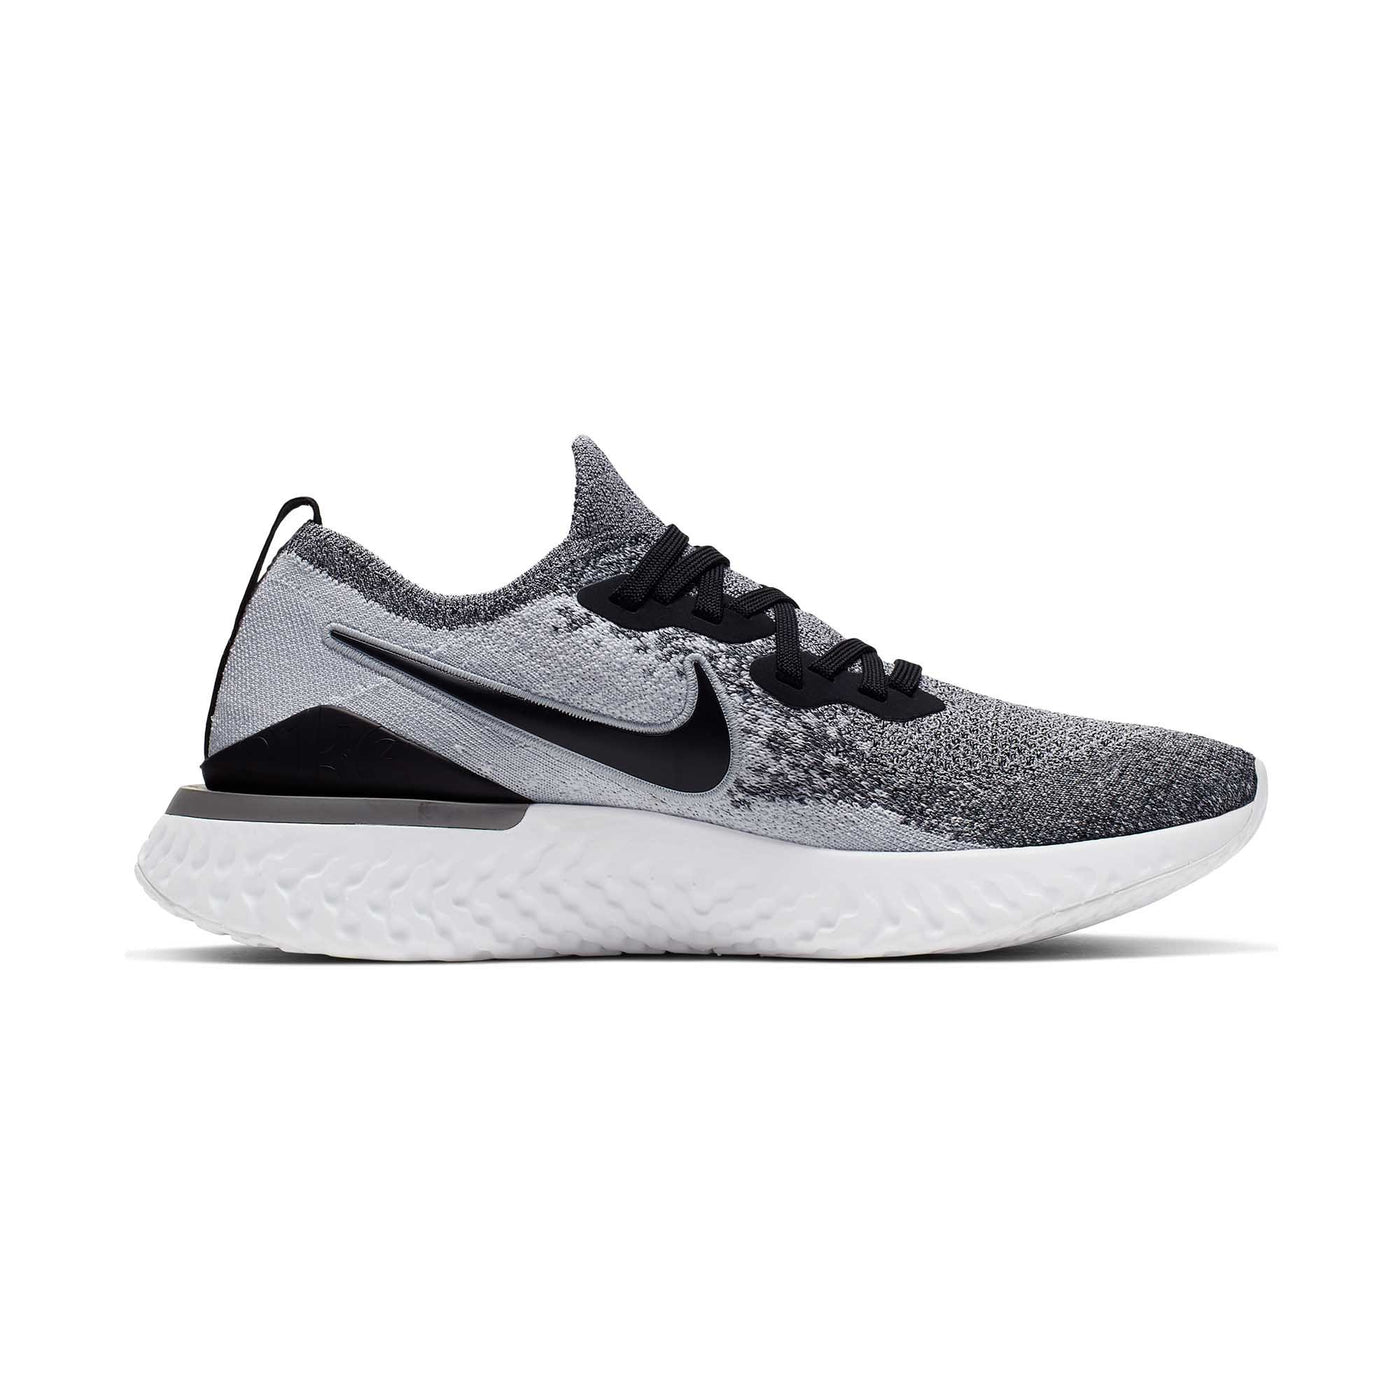 6784b479064 Women Epic React Flyknit 2 Running Shoes